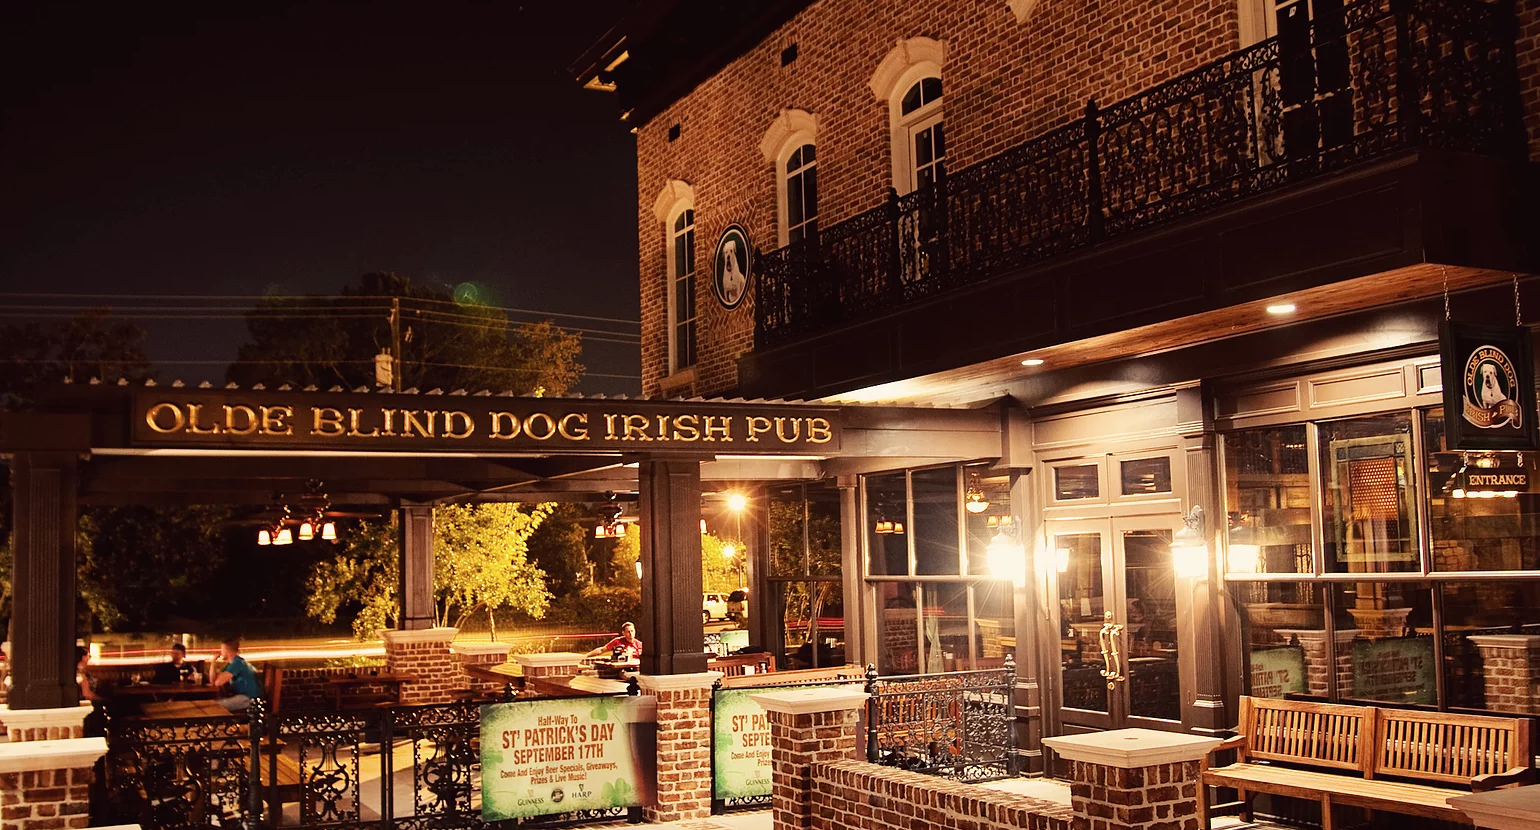 Olde Blind Dog Irish Pub in America